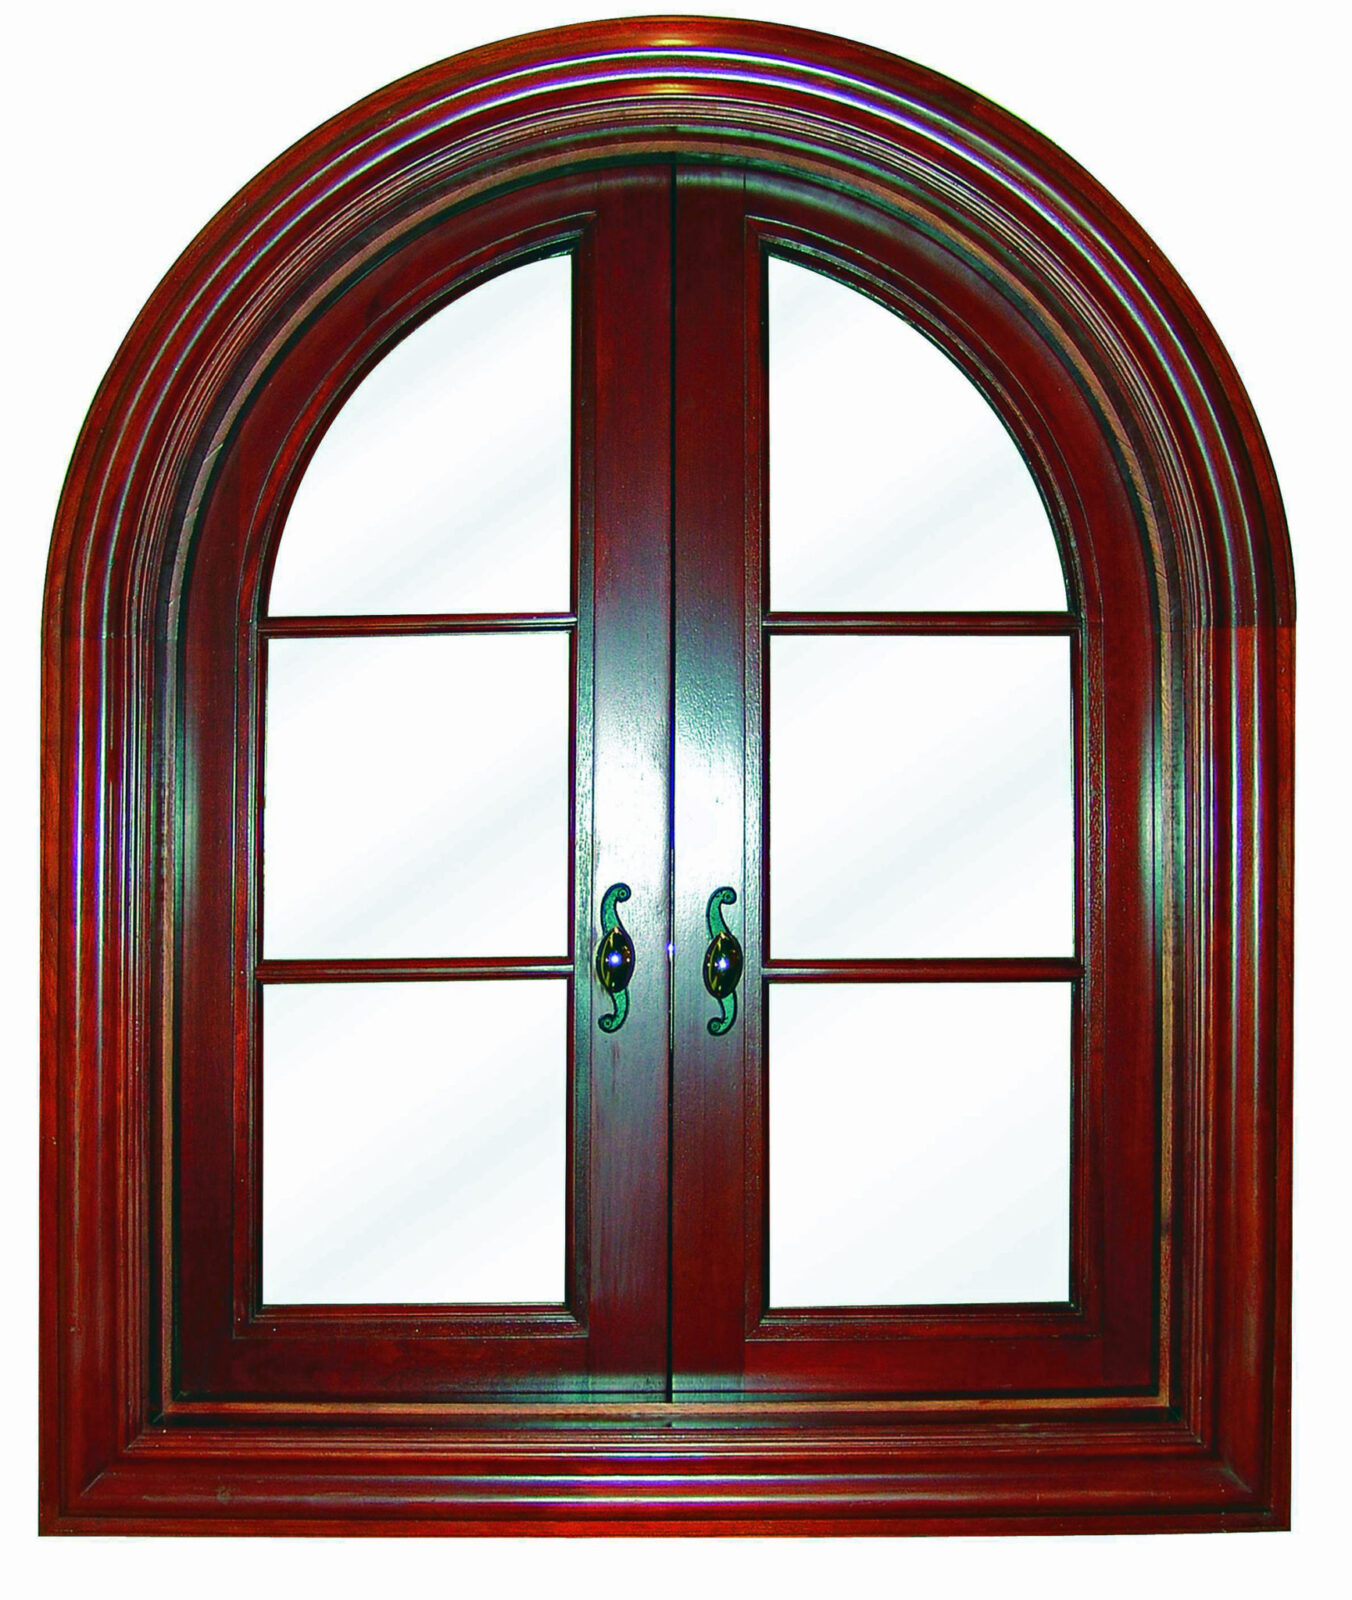 GABLES BY THE SEA MAHOGANY CASEMENT WINDOW